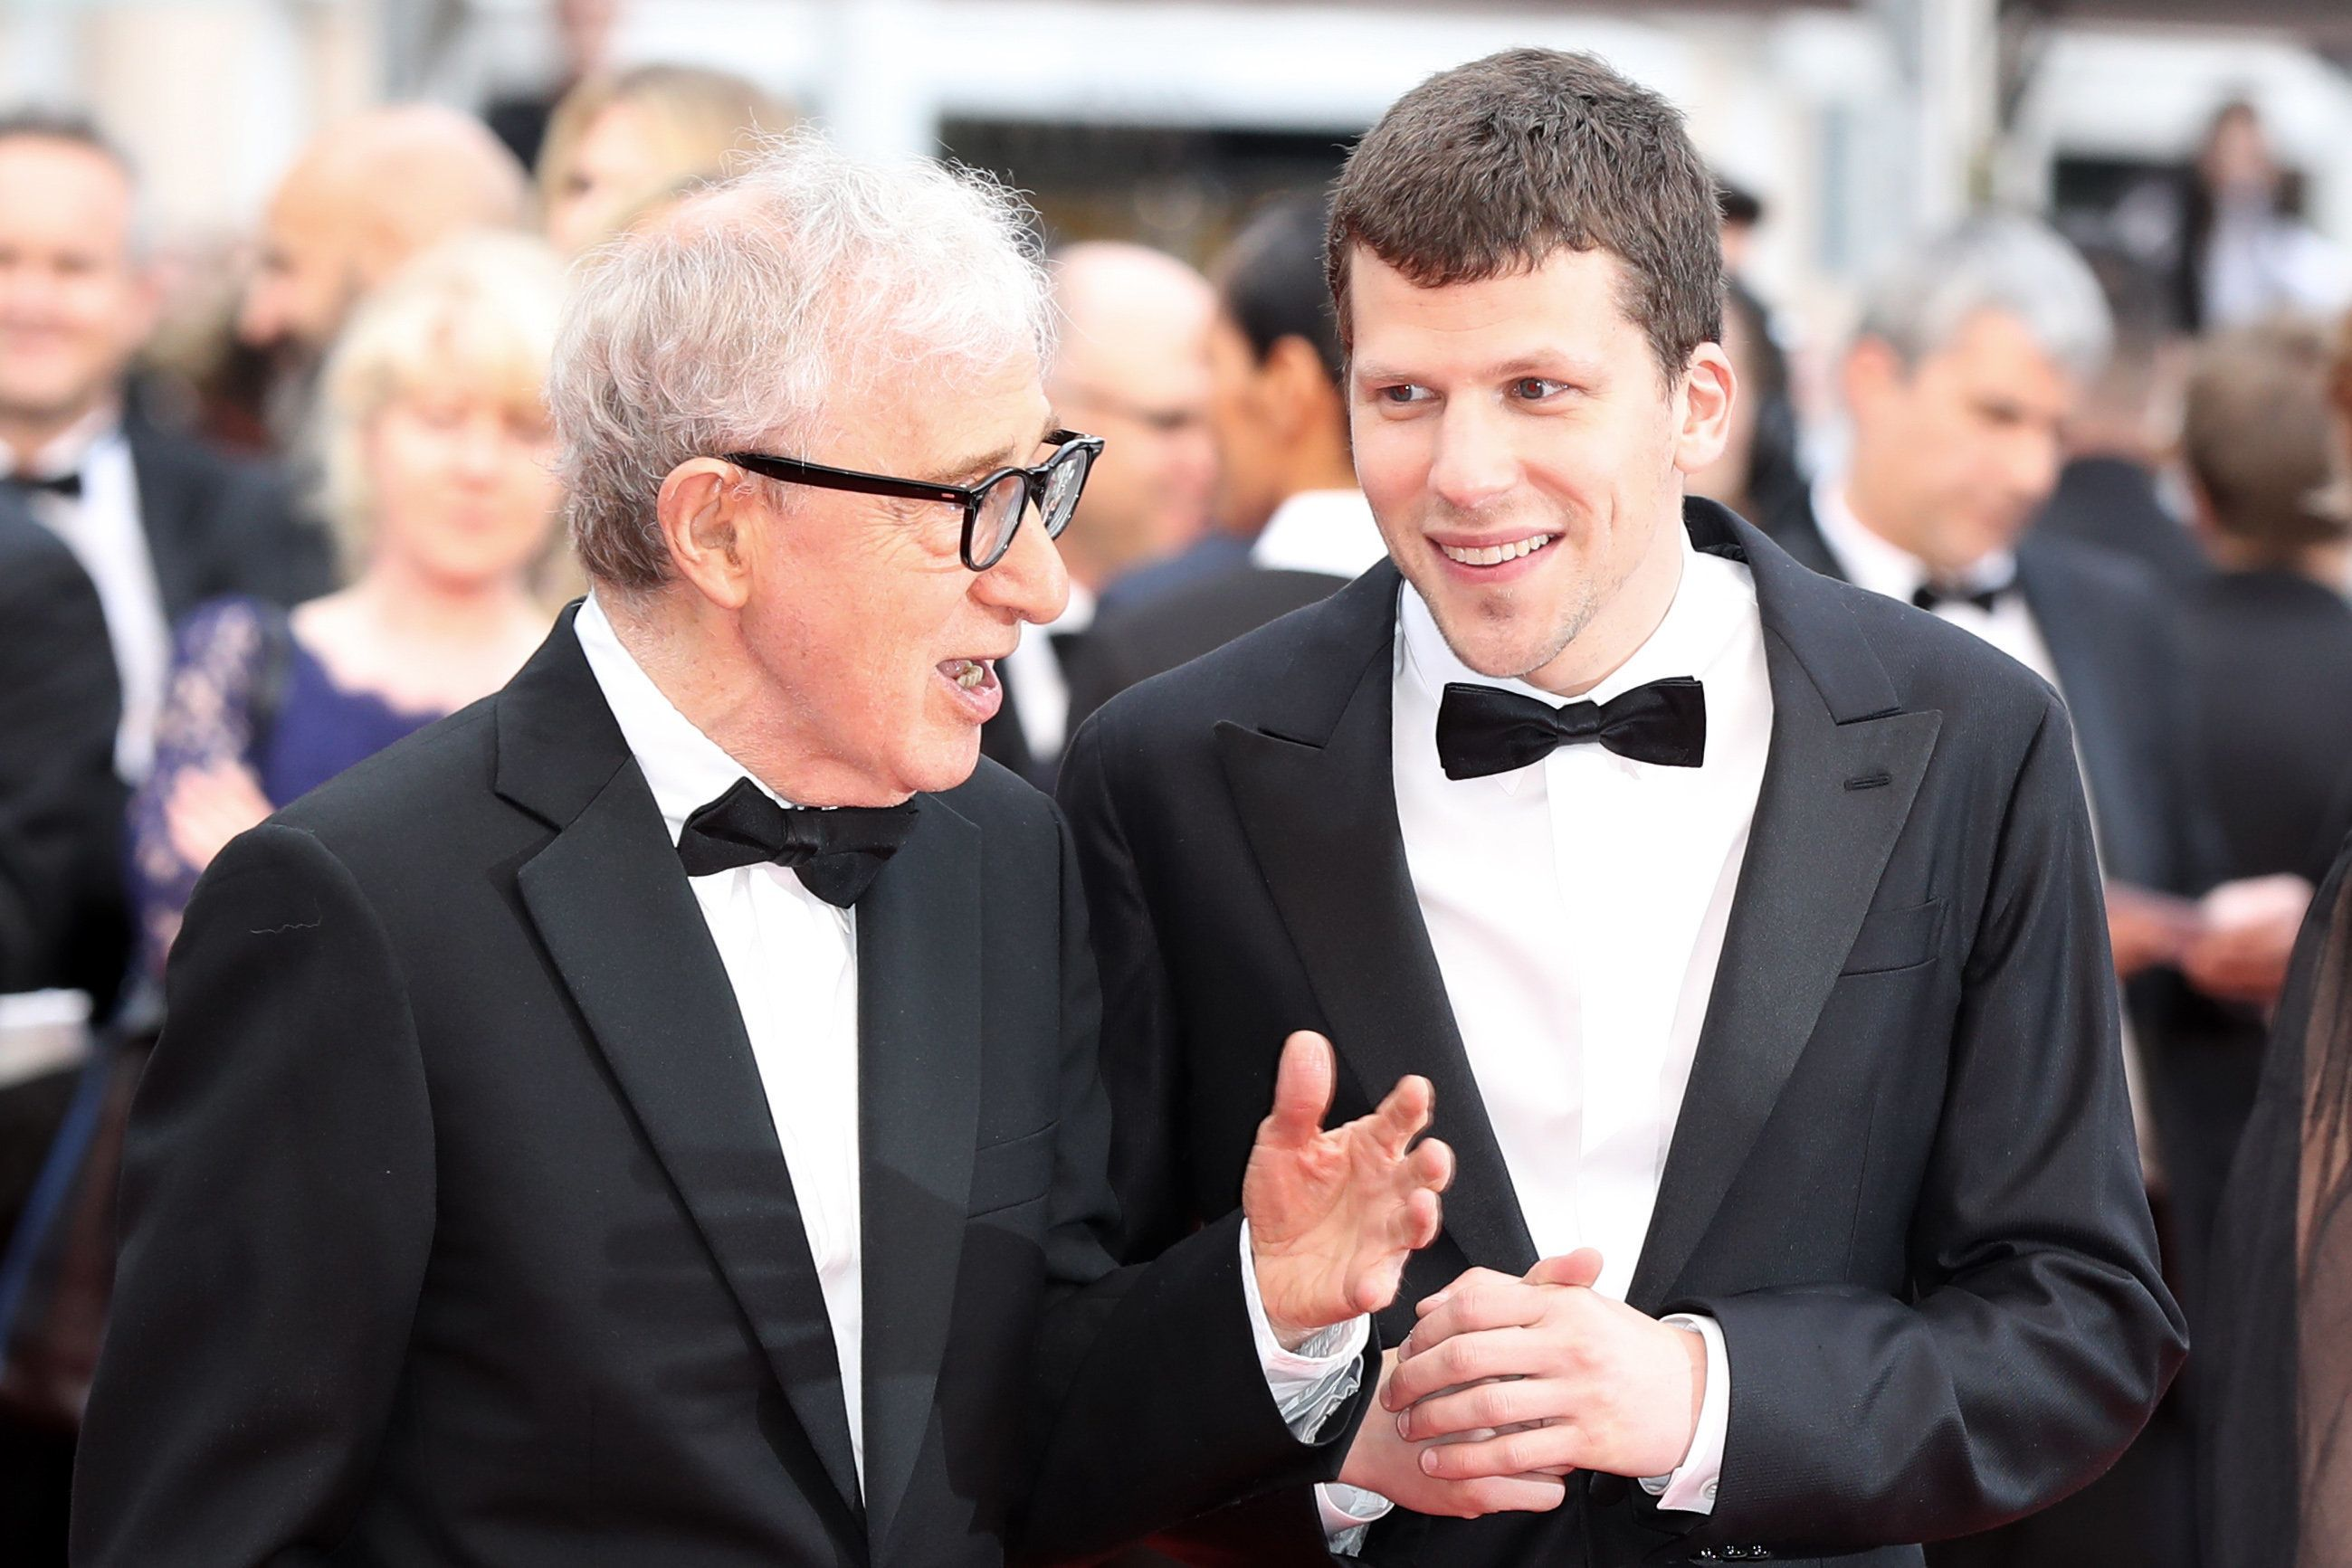 EXCLUSIVE: Jesse Eisenberg Defends Woody Allen Over Abuse